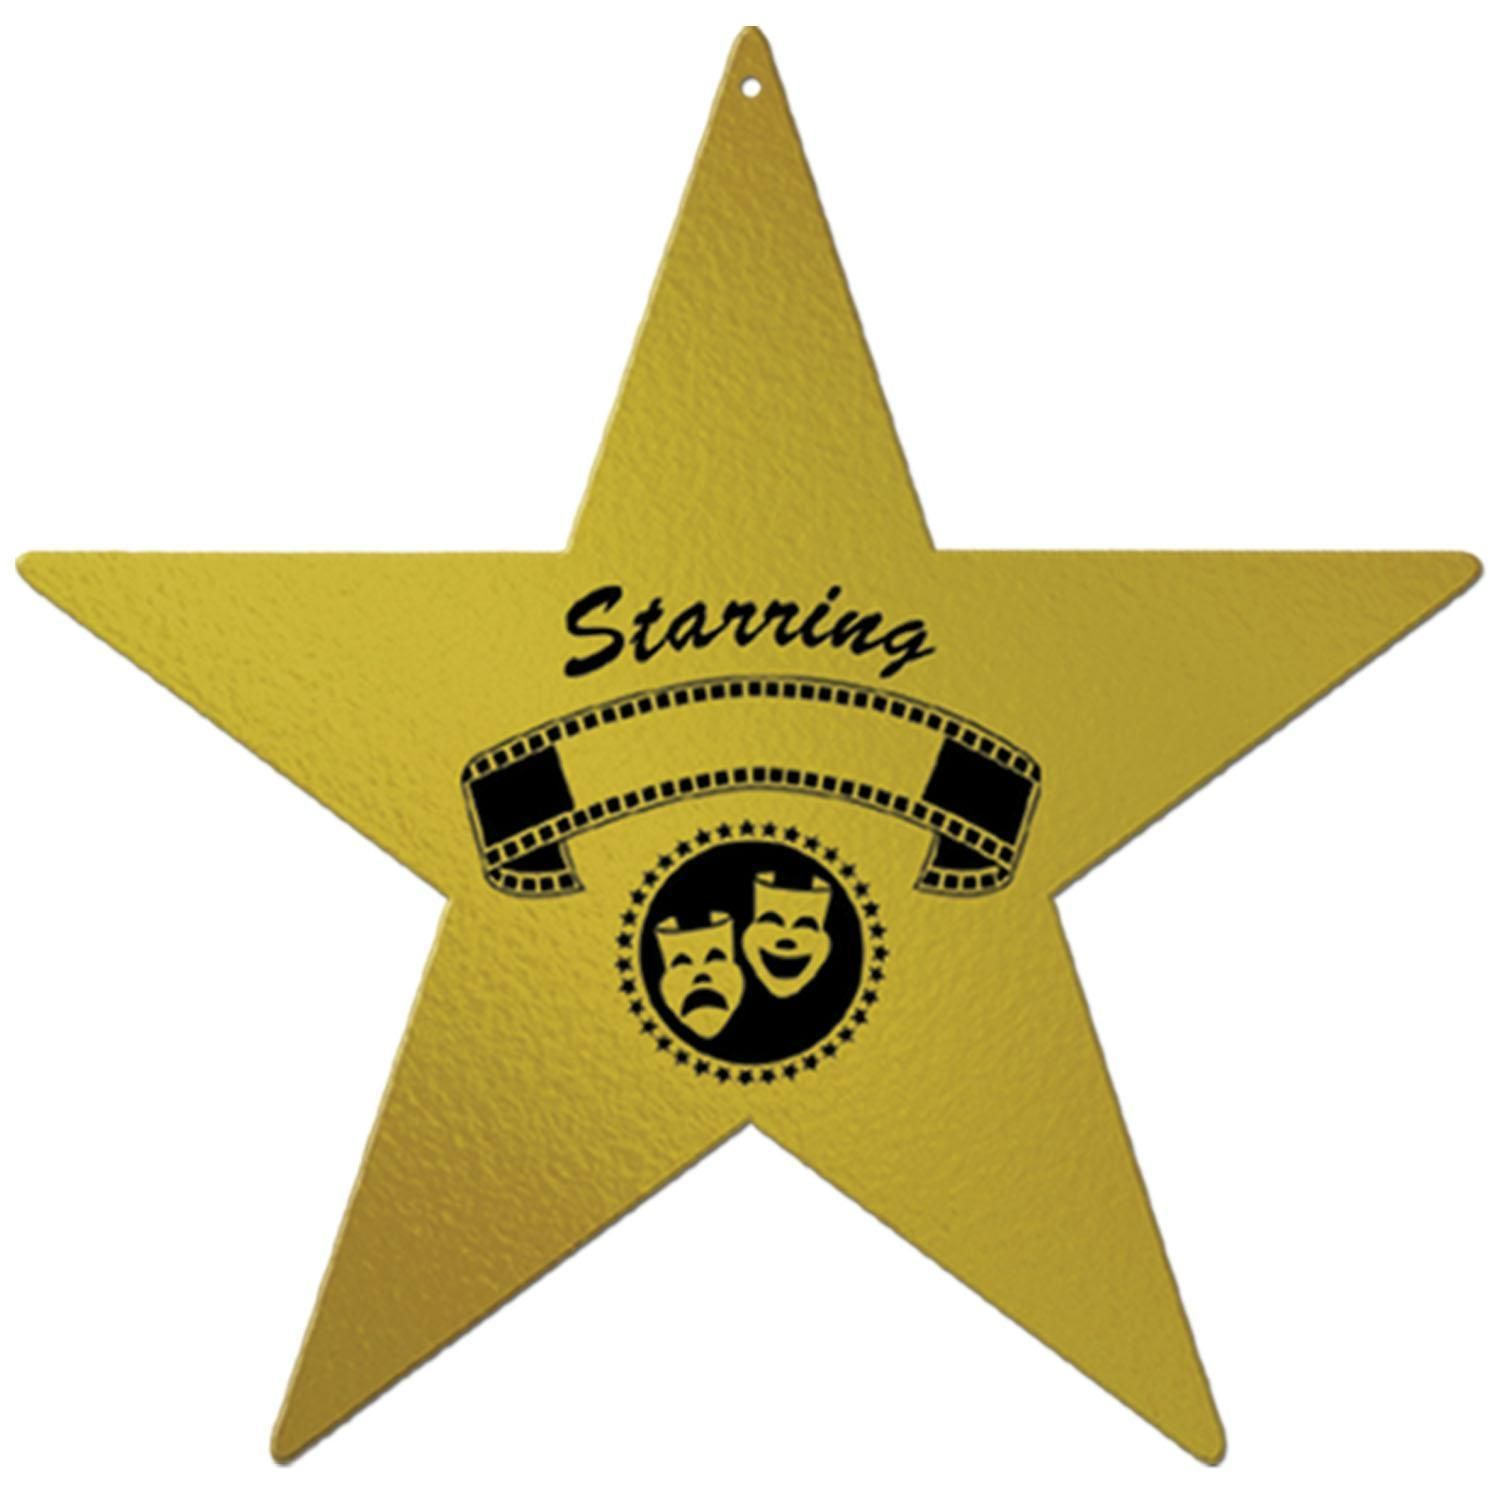 Awards Night Decoration Foil Awards Night Star (24ct) | Products ...